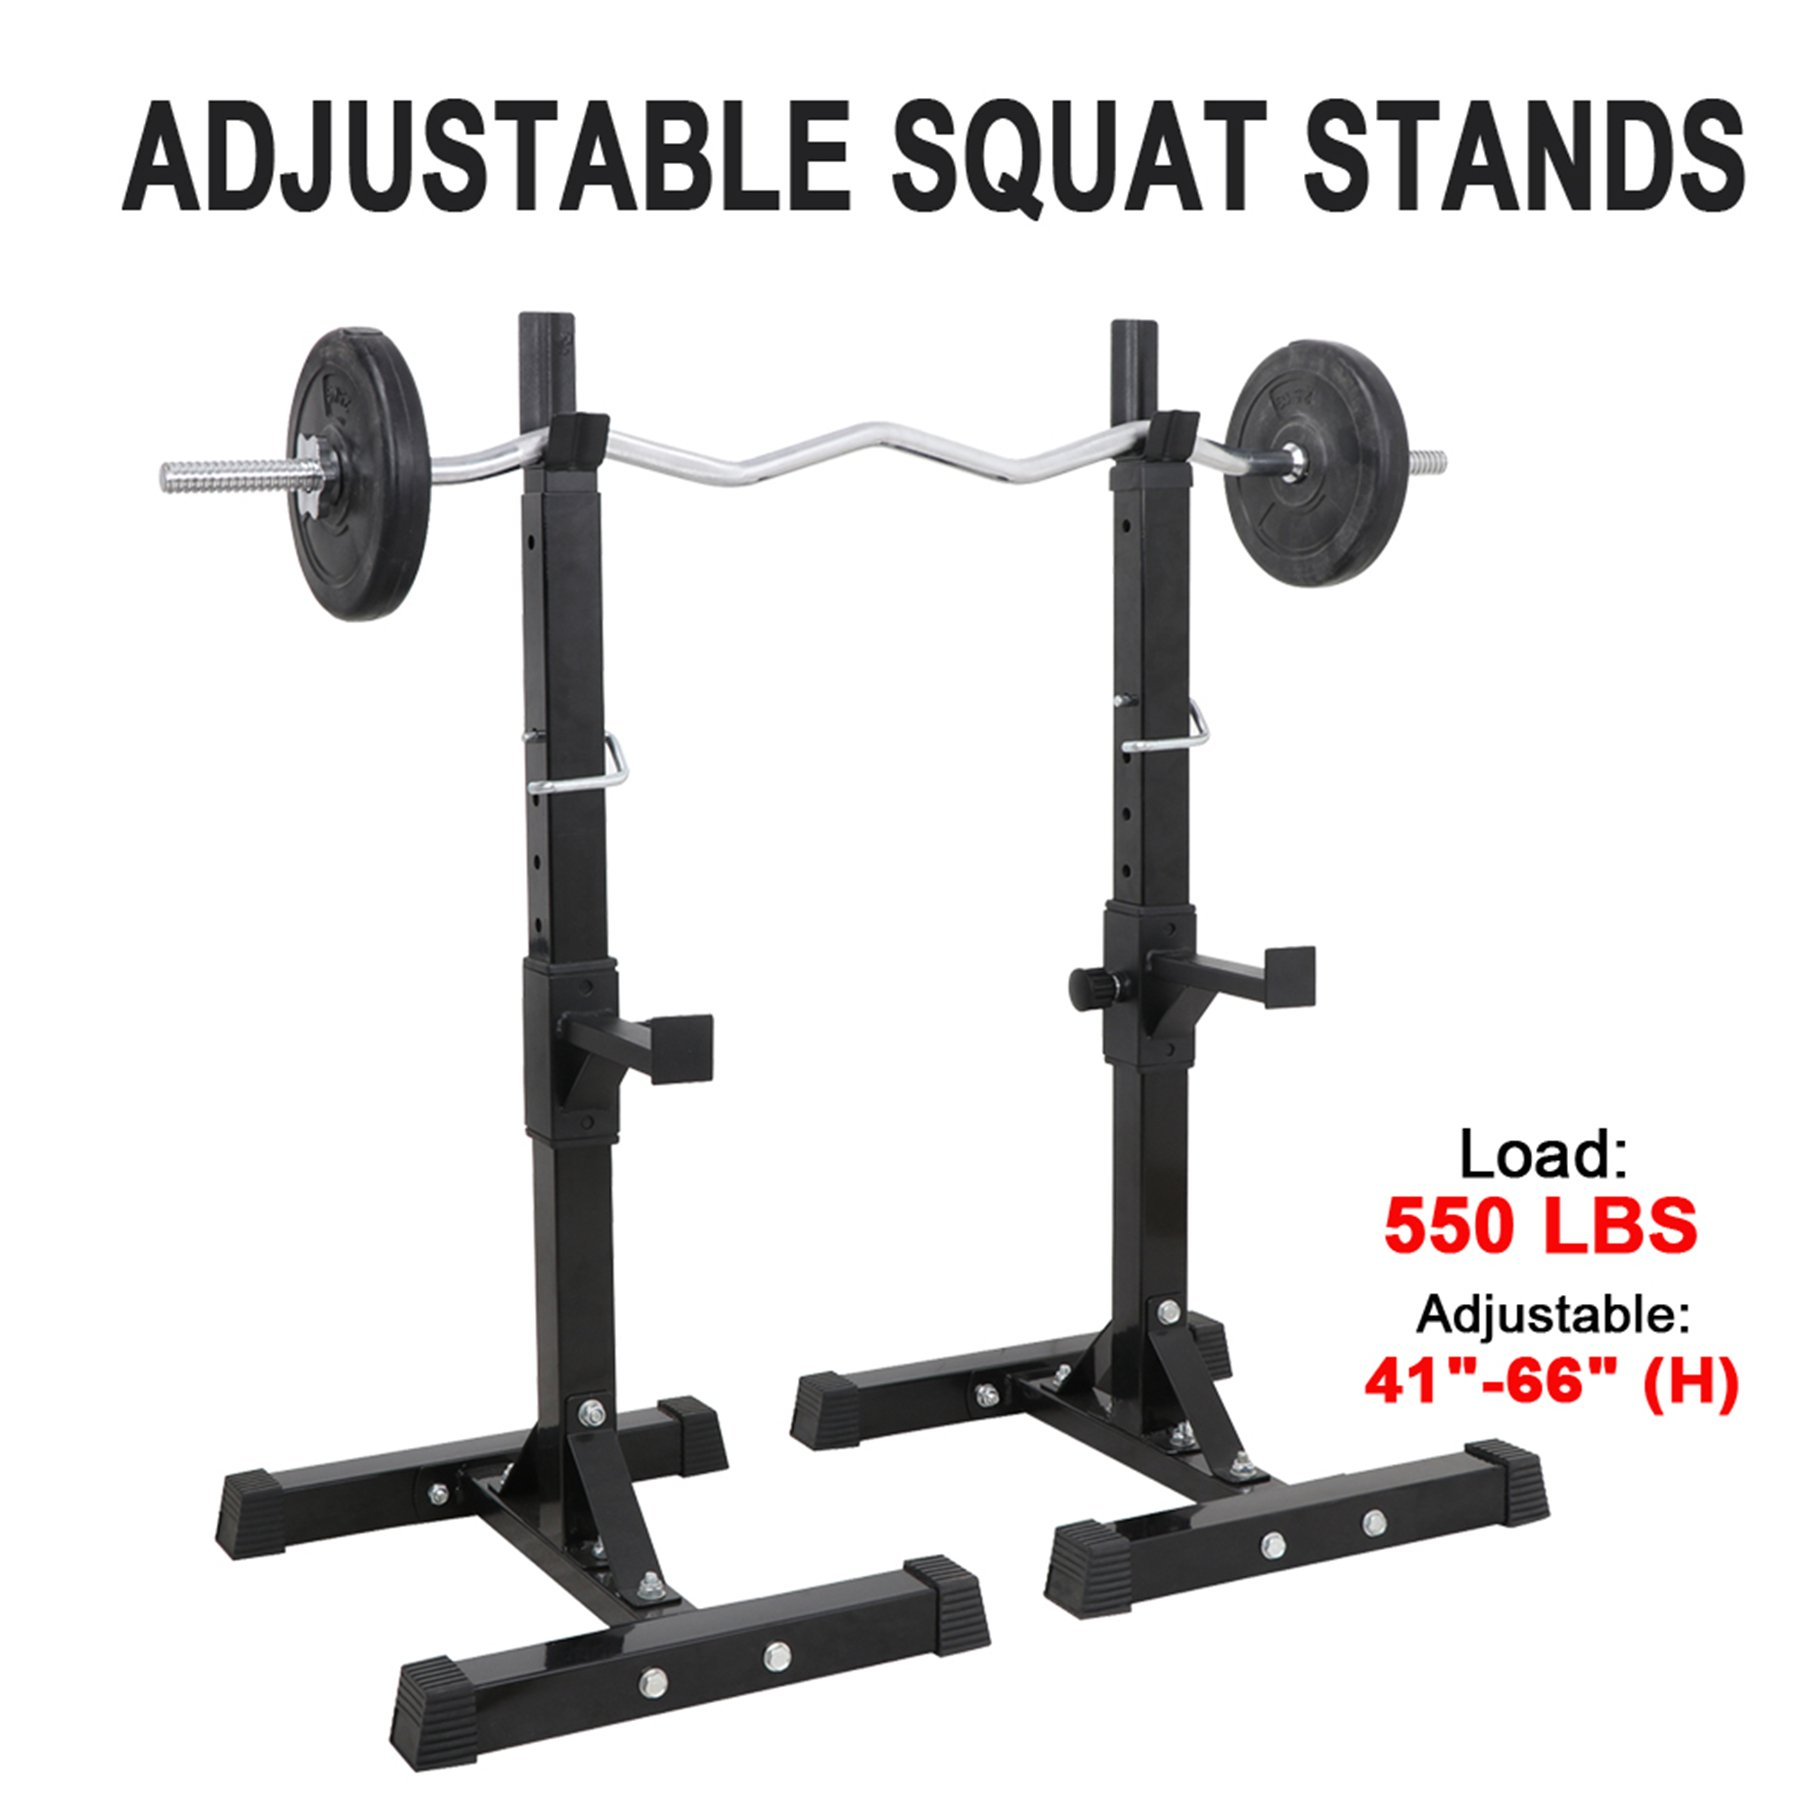 F2C Max Load 550Lbs Pair of Adjustable 41''-66'' Rack Sturdy Steel Squat Barbell Free Bench Press Stands Gym/Home Gym Portable Dumbbell Racks Stands (one Pair/Two pcs) by F2C (Image #3)